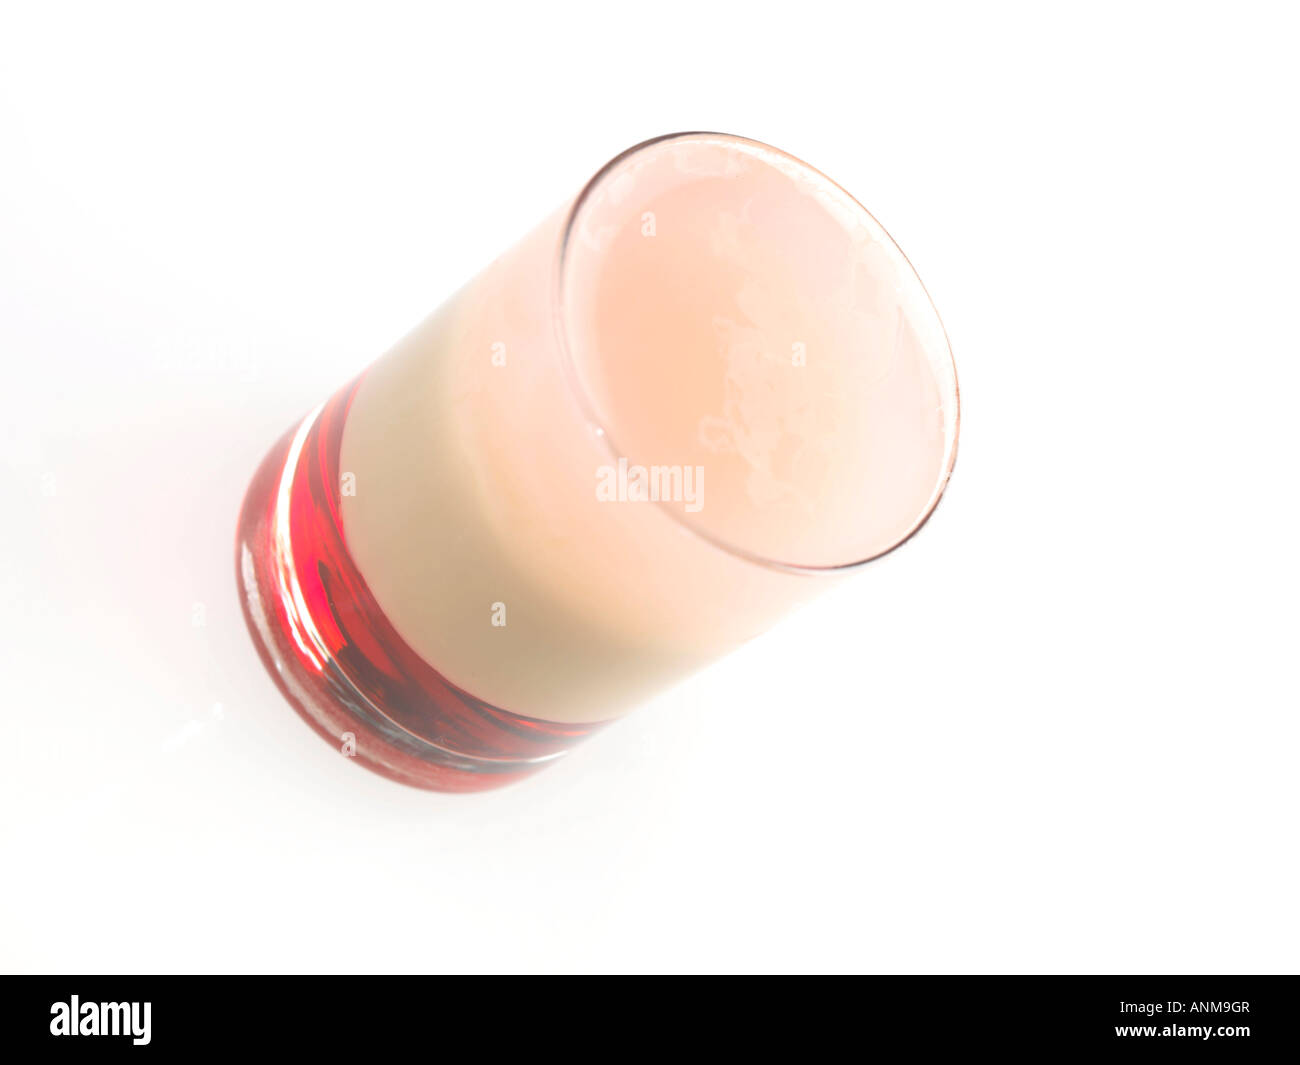 Slippery Nipple Stock Photo Alamy